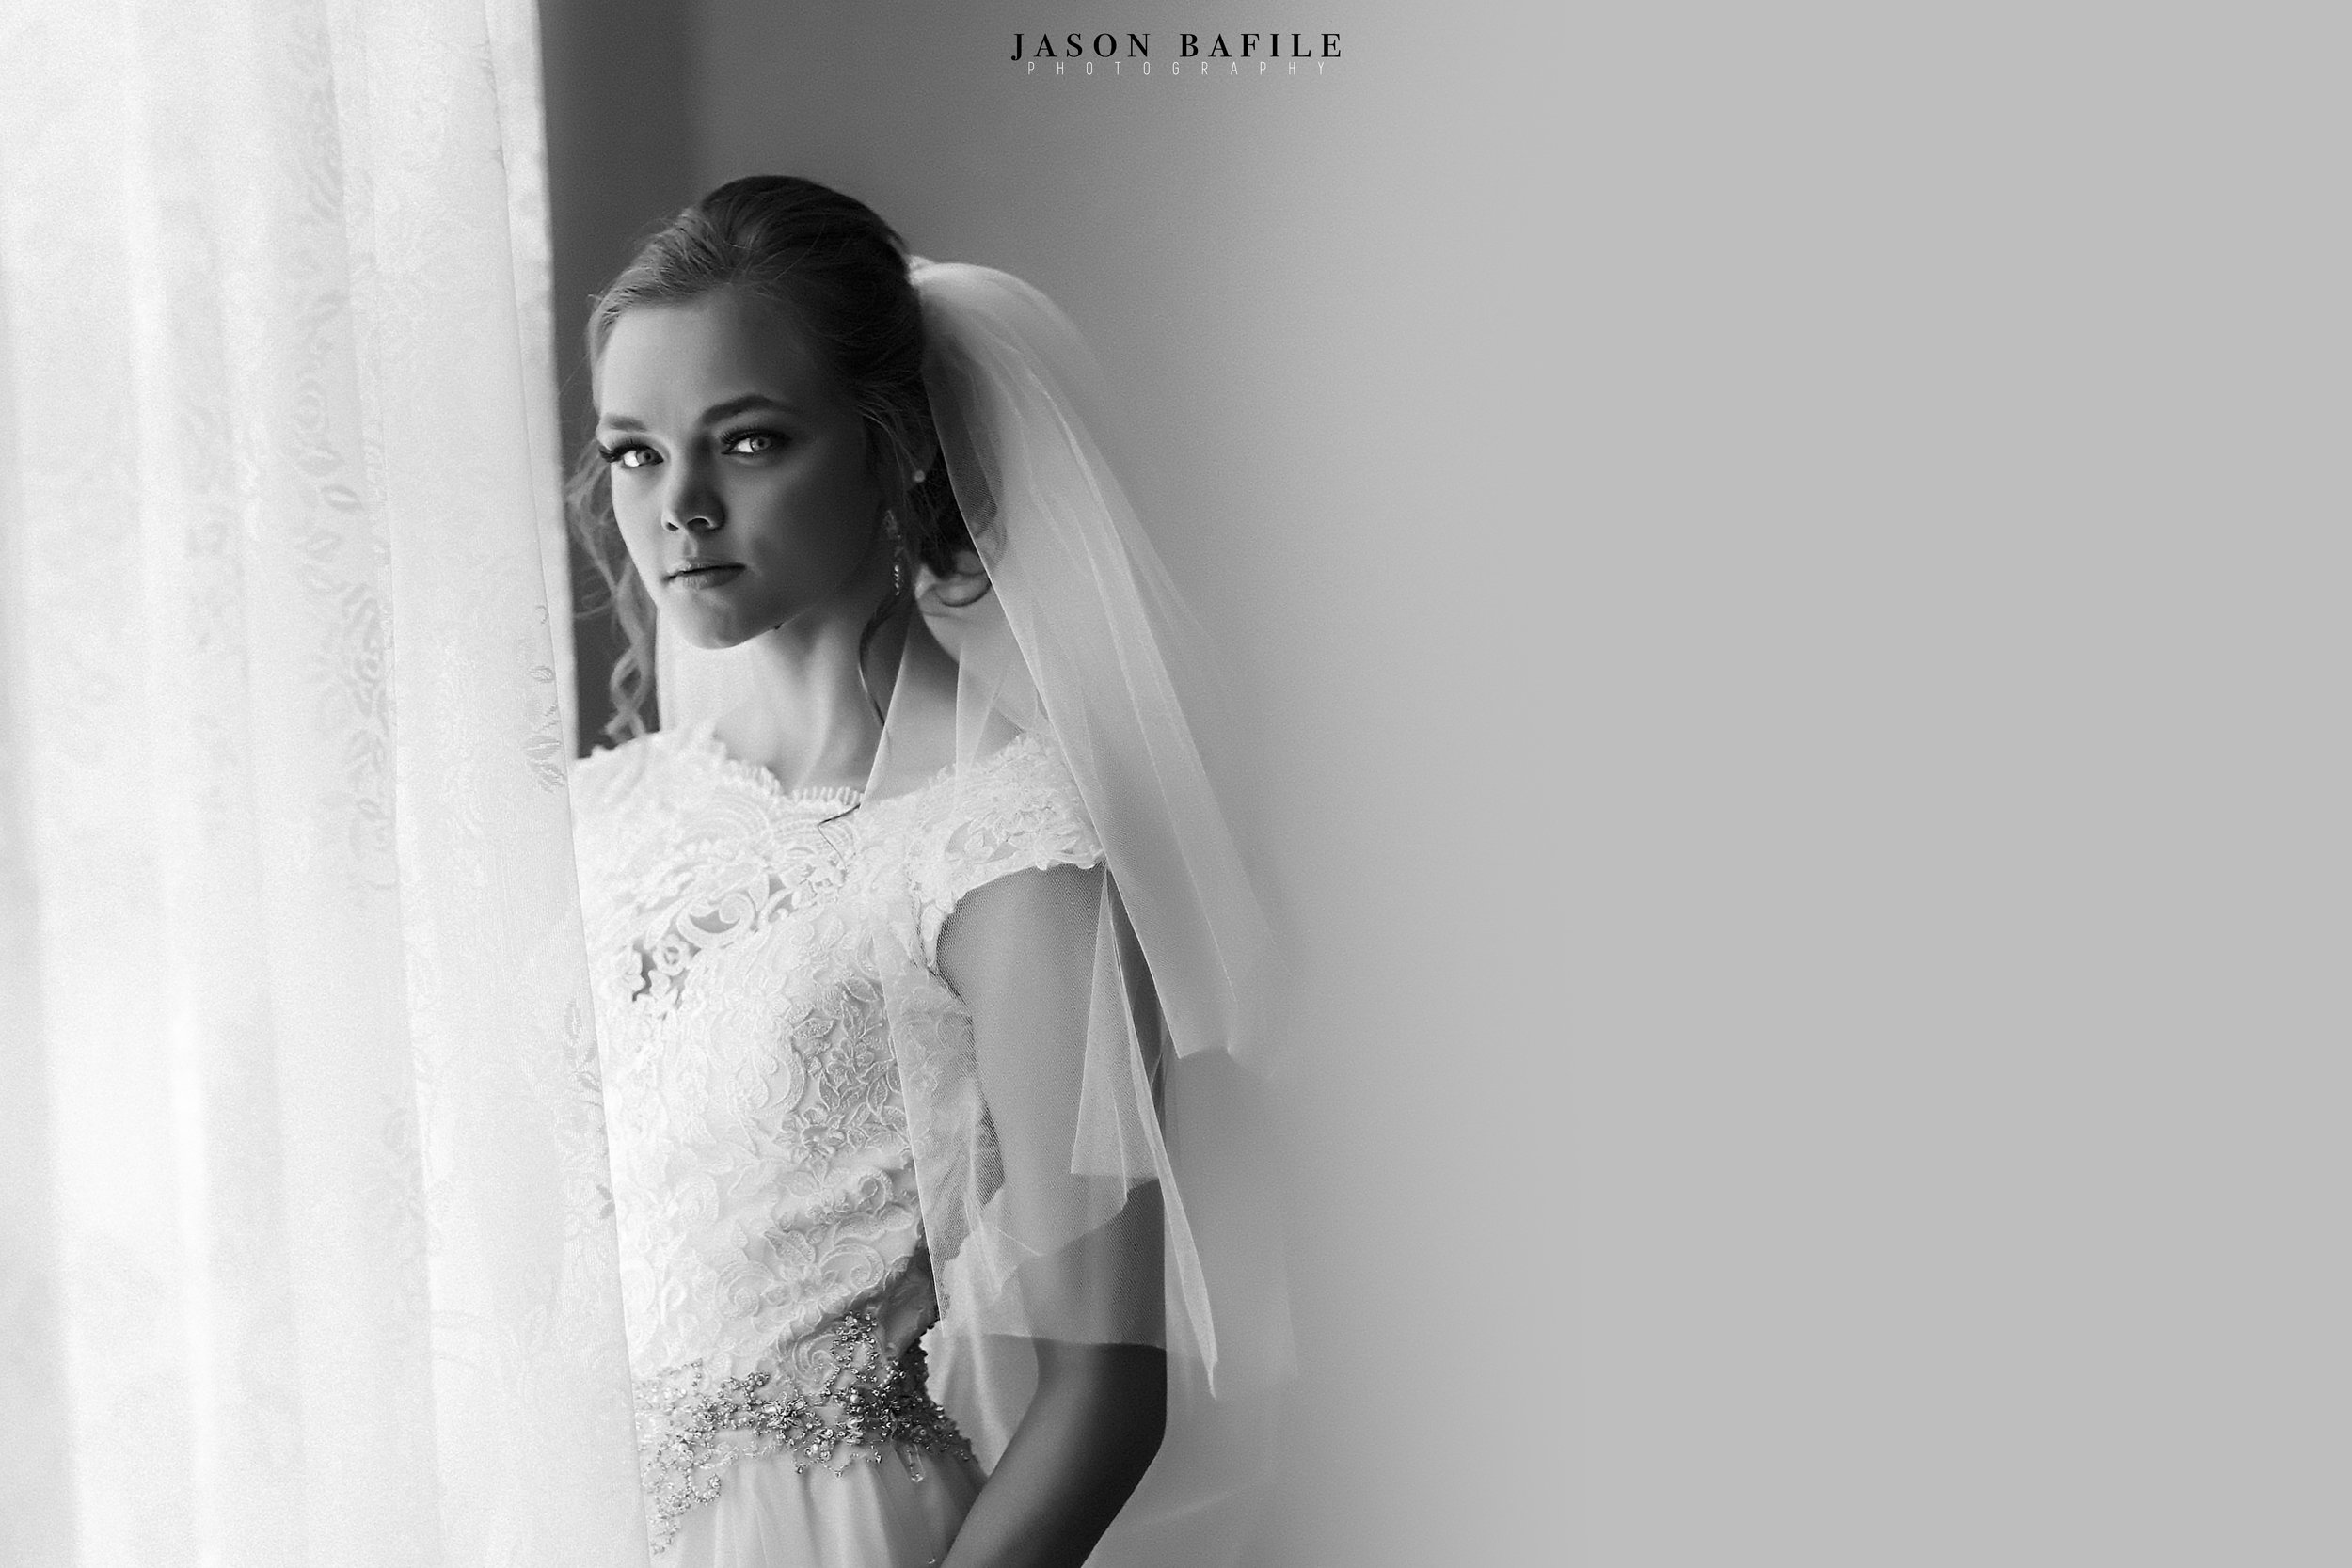 Wedding Photography at This Is It! in Johnstown, PA